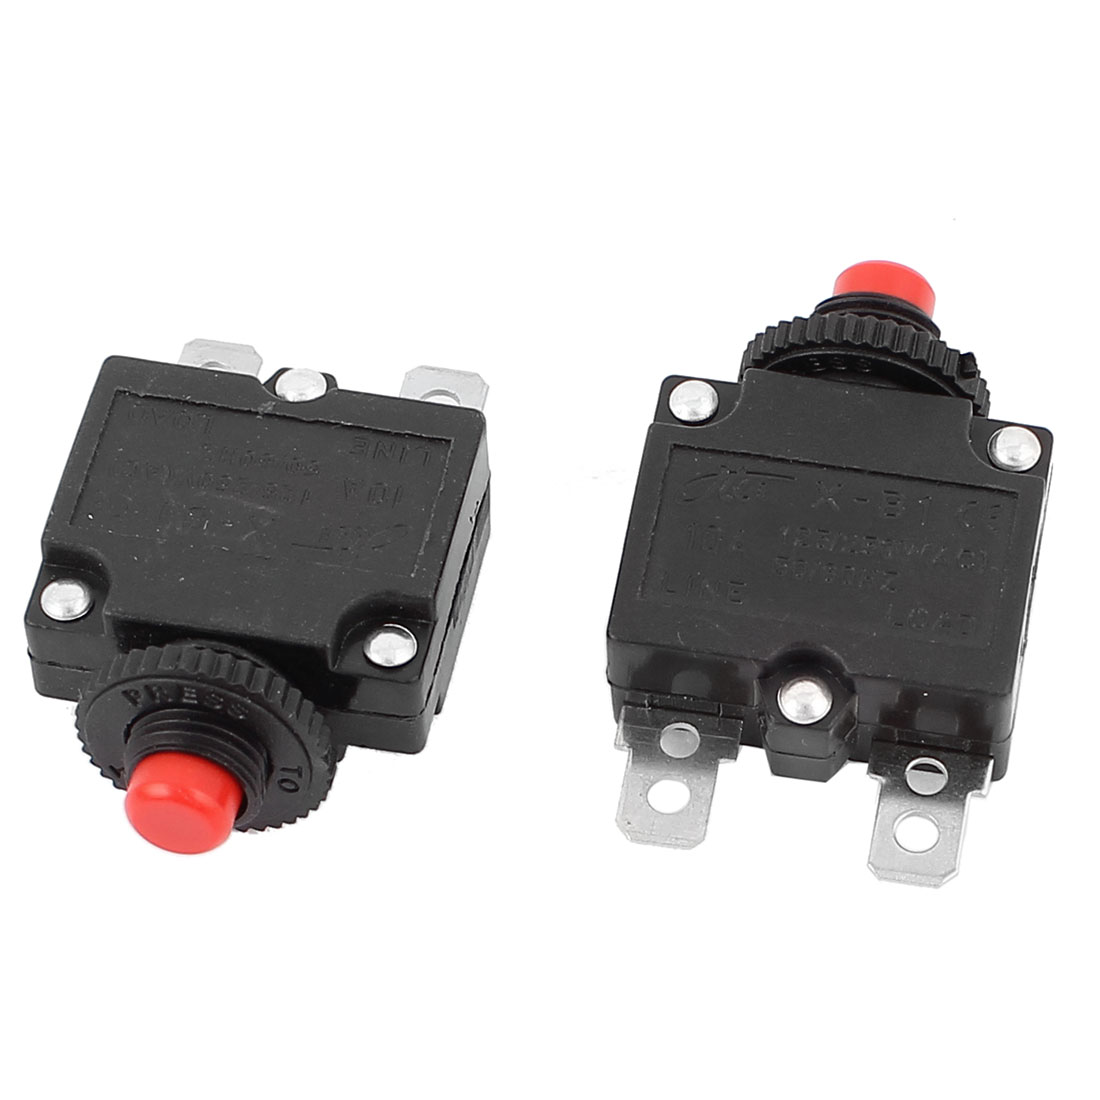 2 Pcs AC 250V/125V 10A Circuit Breaker Thermal Overload Protection Device for Electric Cooker